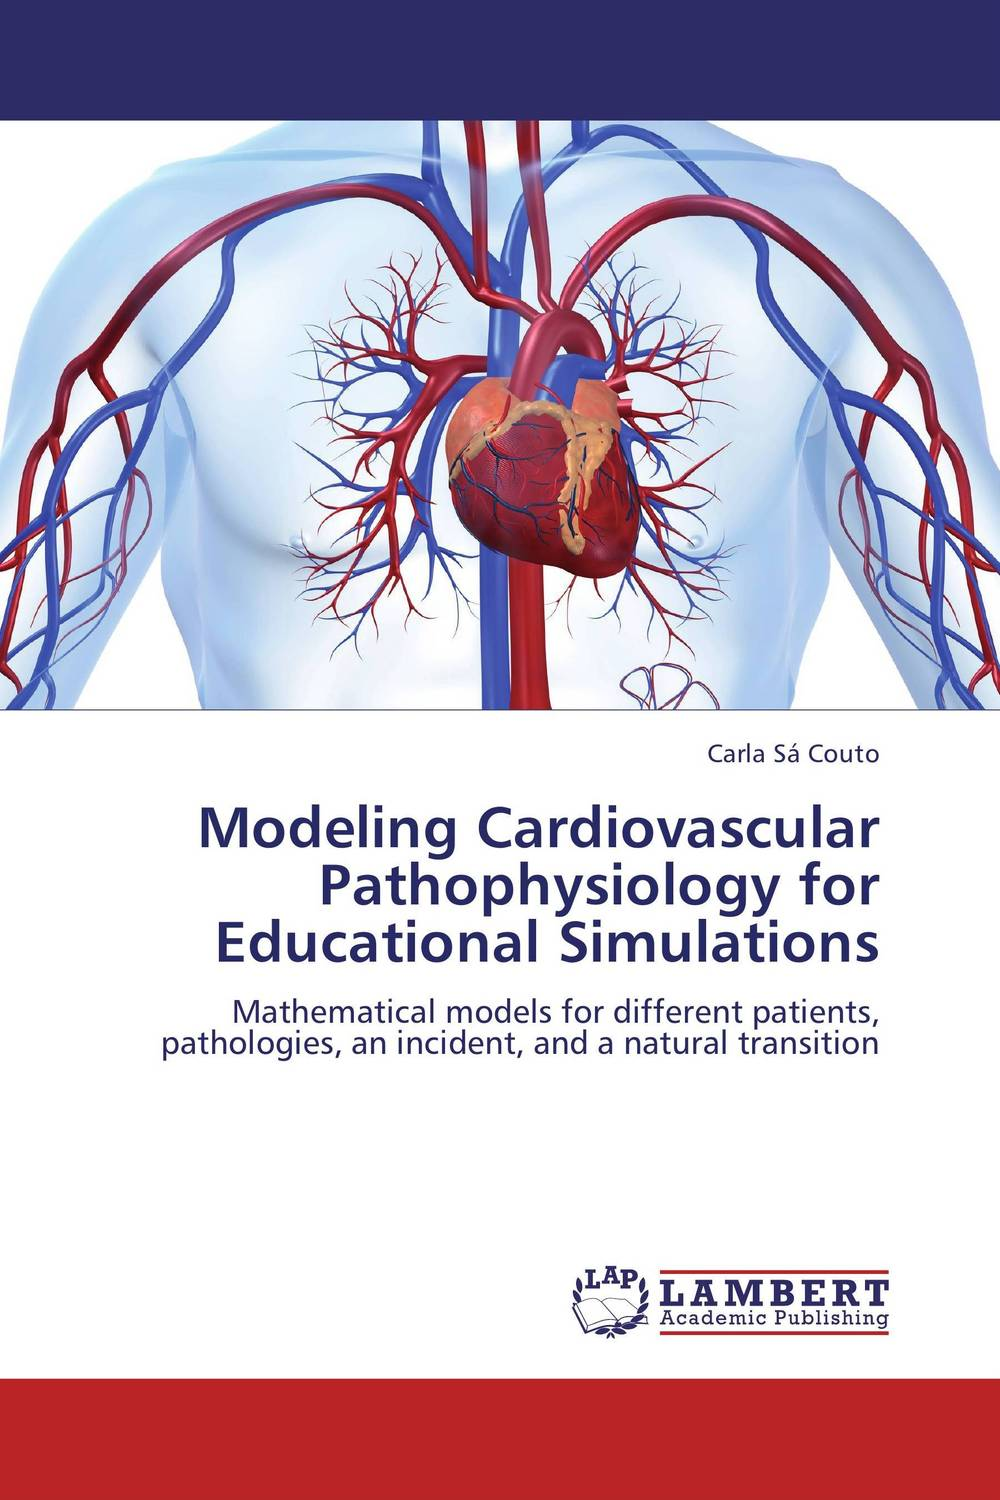 Modeling Cardiovascular Pathophysiology for Educational Simulations medical training manikins medical training simulators nursing training manikin elbow joint cavity injection model gasen csm0033